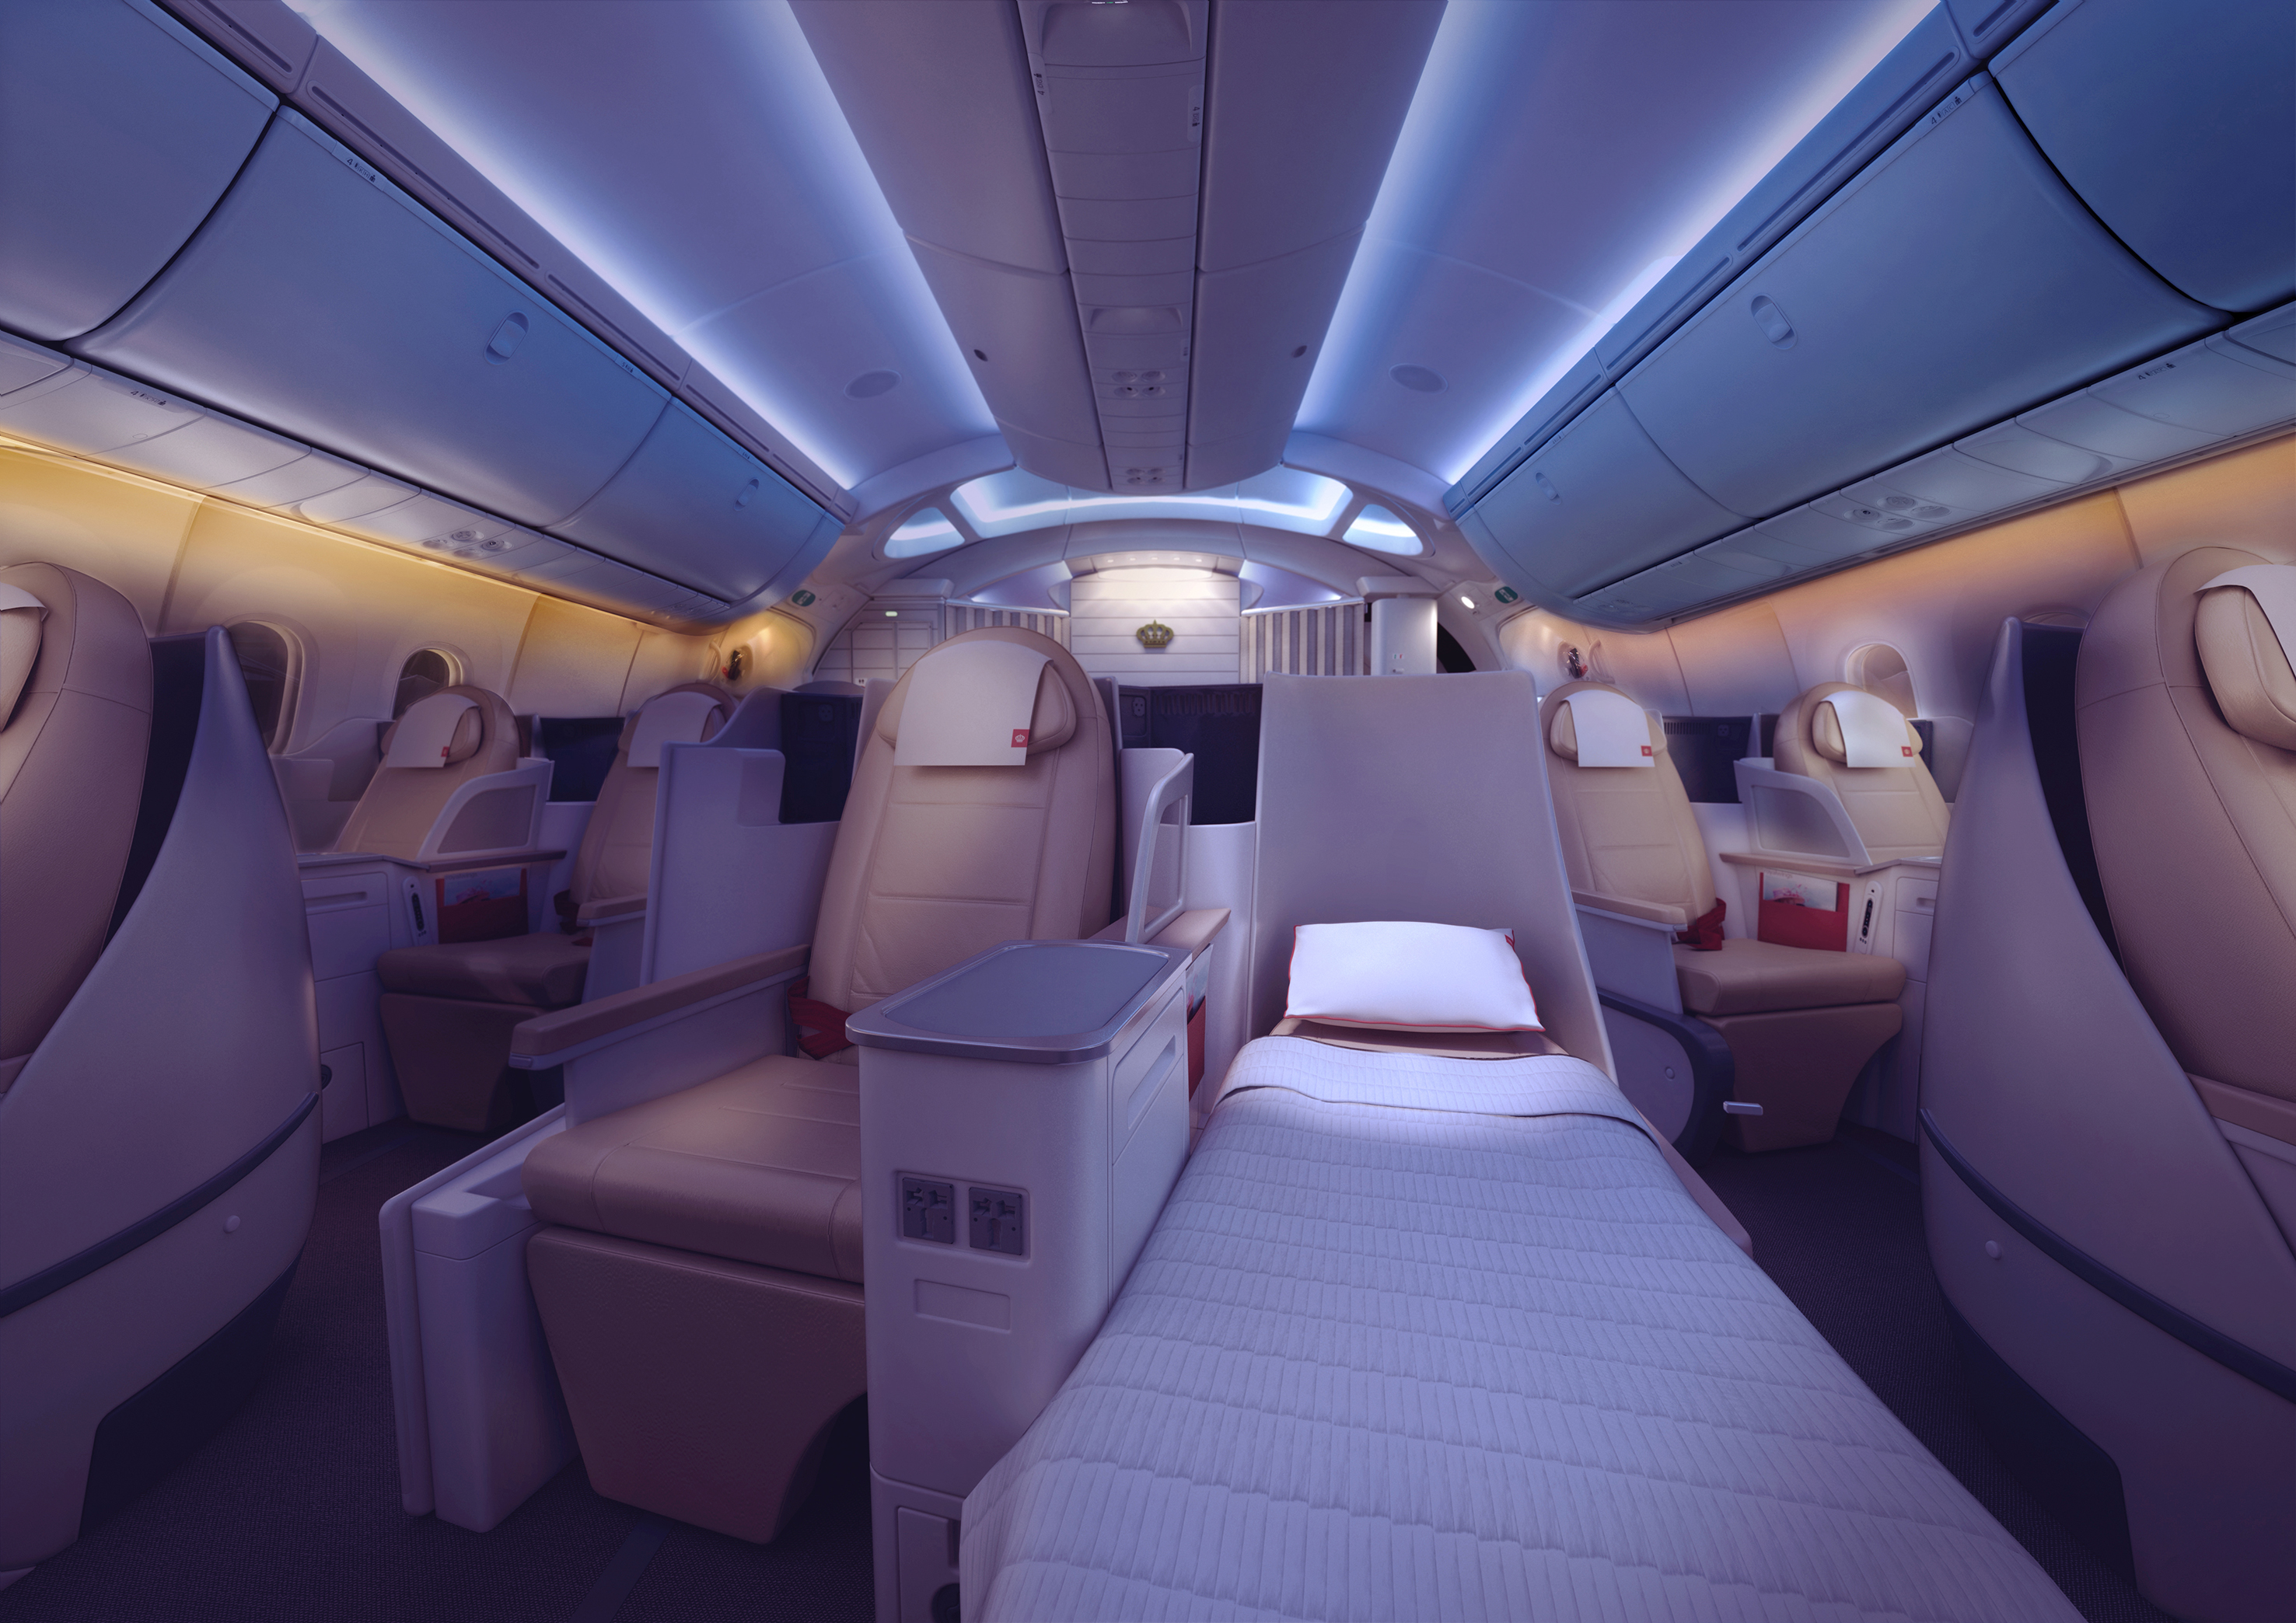 Royal Jordanians 787 Offers Understated Luxury